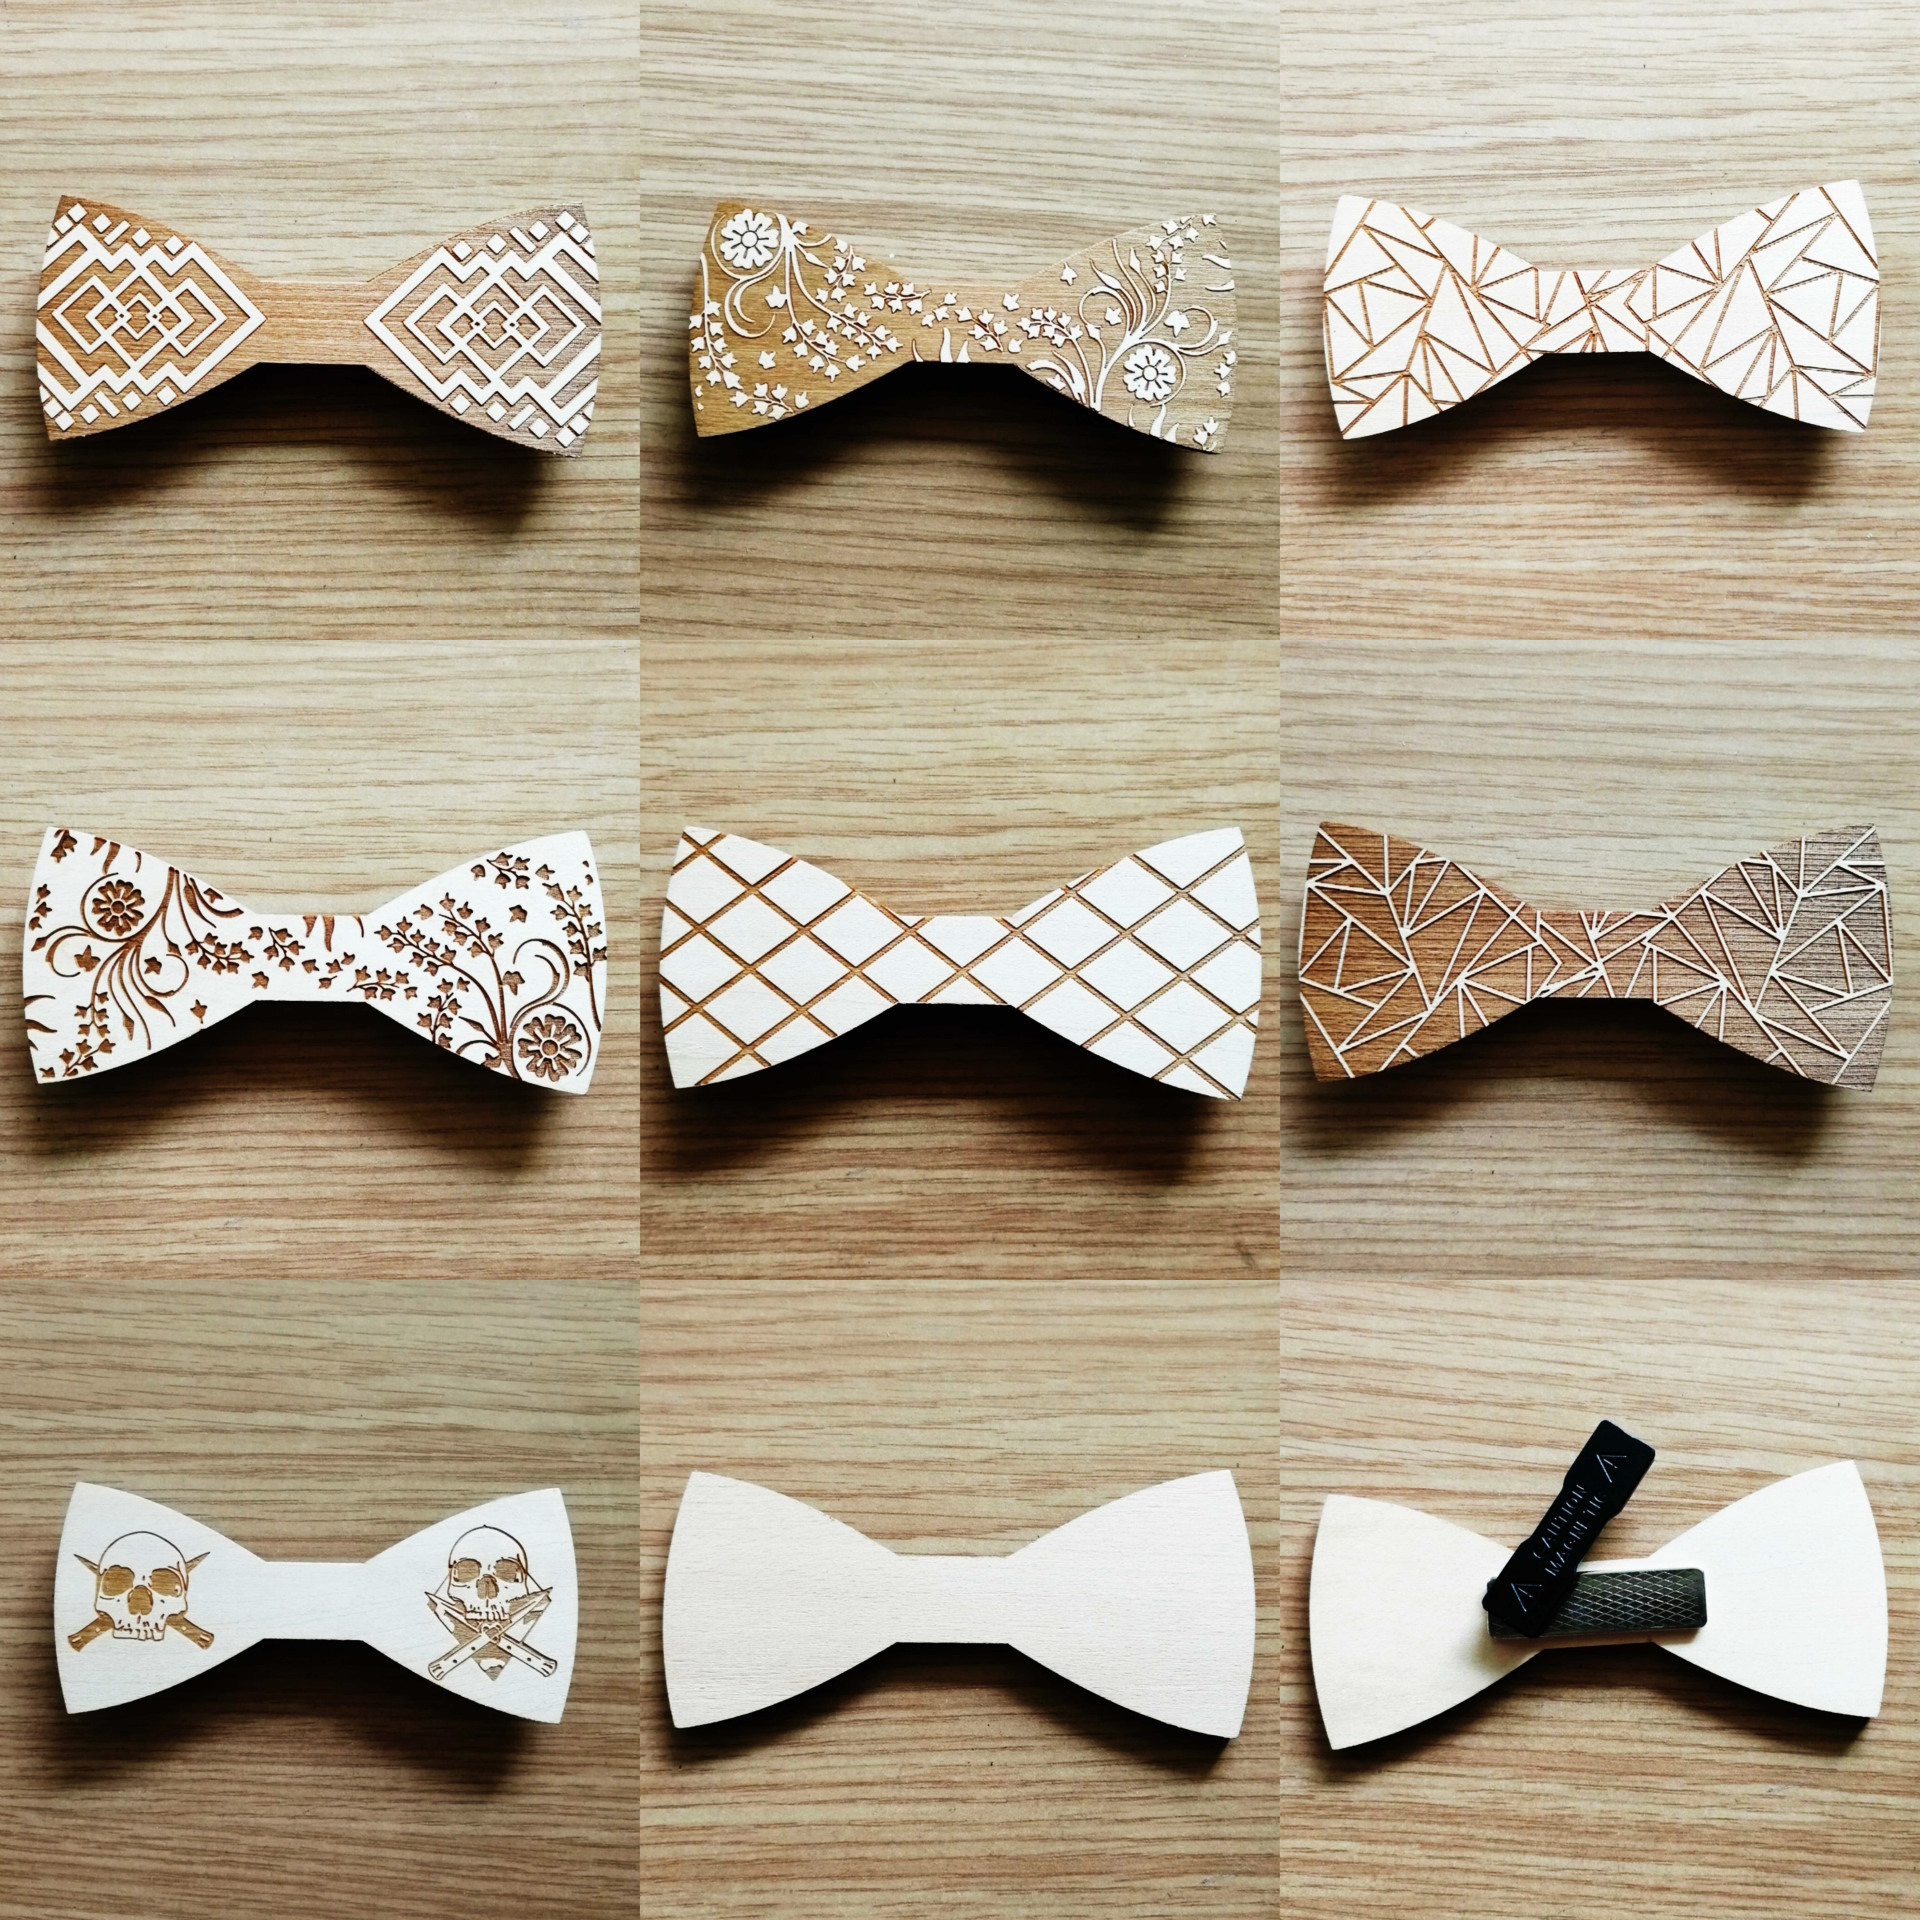 Handmade Wooden Bow Tie Men's Unisex Suit Shirts Wedding Party Classic Trendy Simple High-grade Wood Bowtie Customizable Gifts